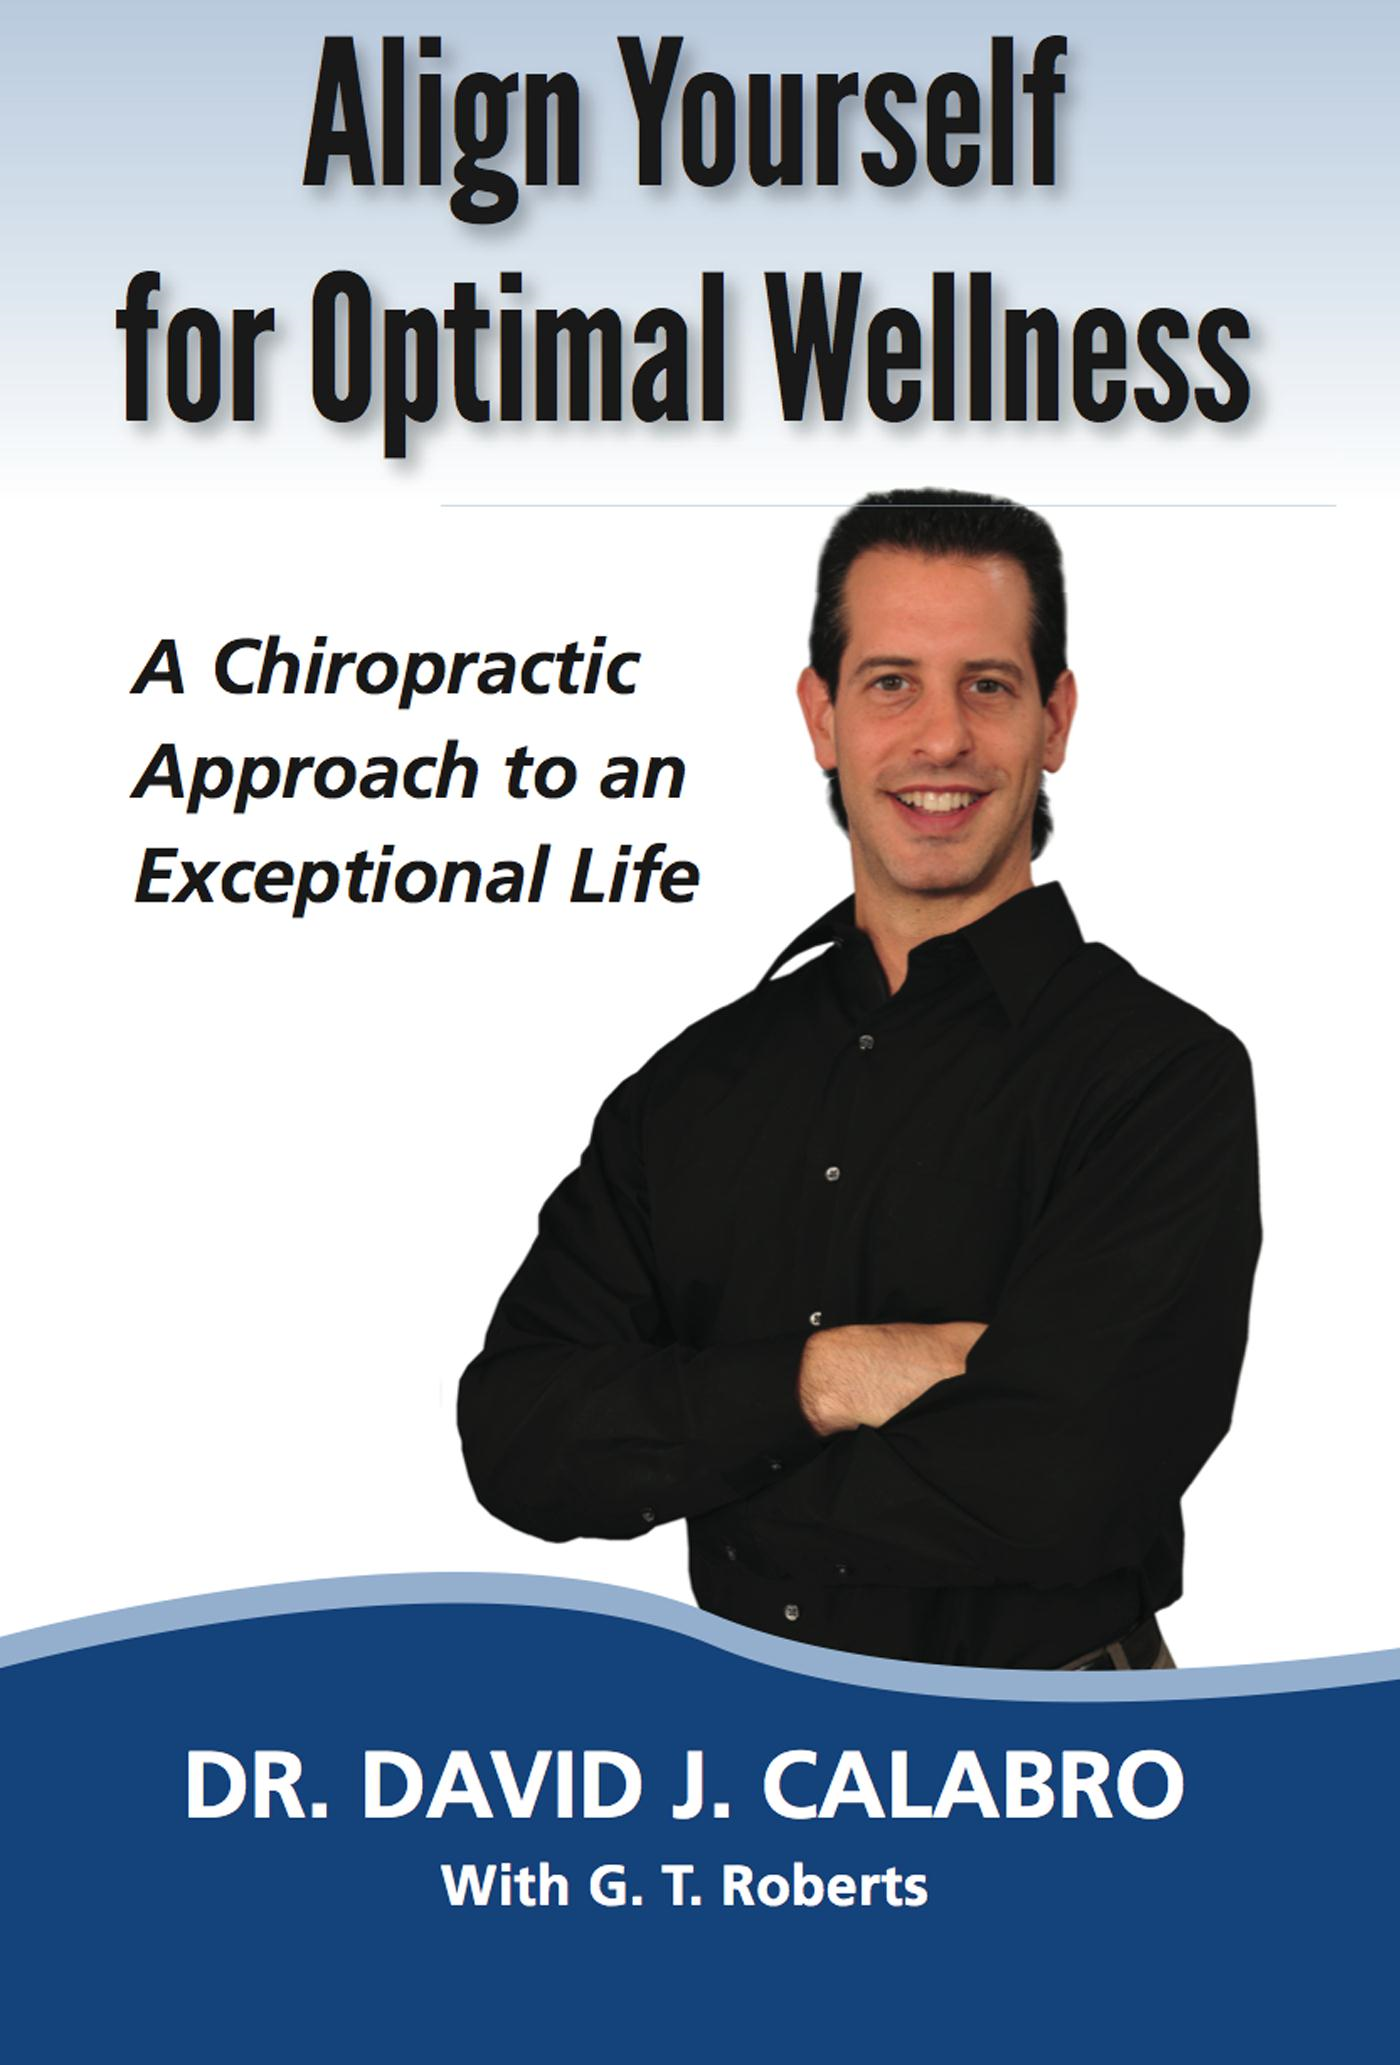 Align Yourself for Optimal Wellness By: Dr. David J. Calabro